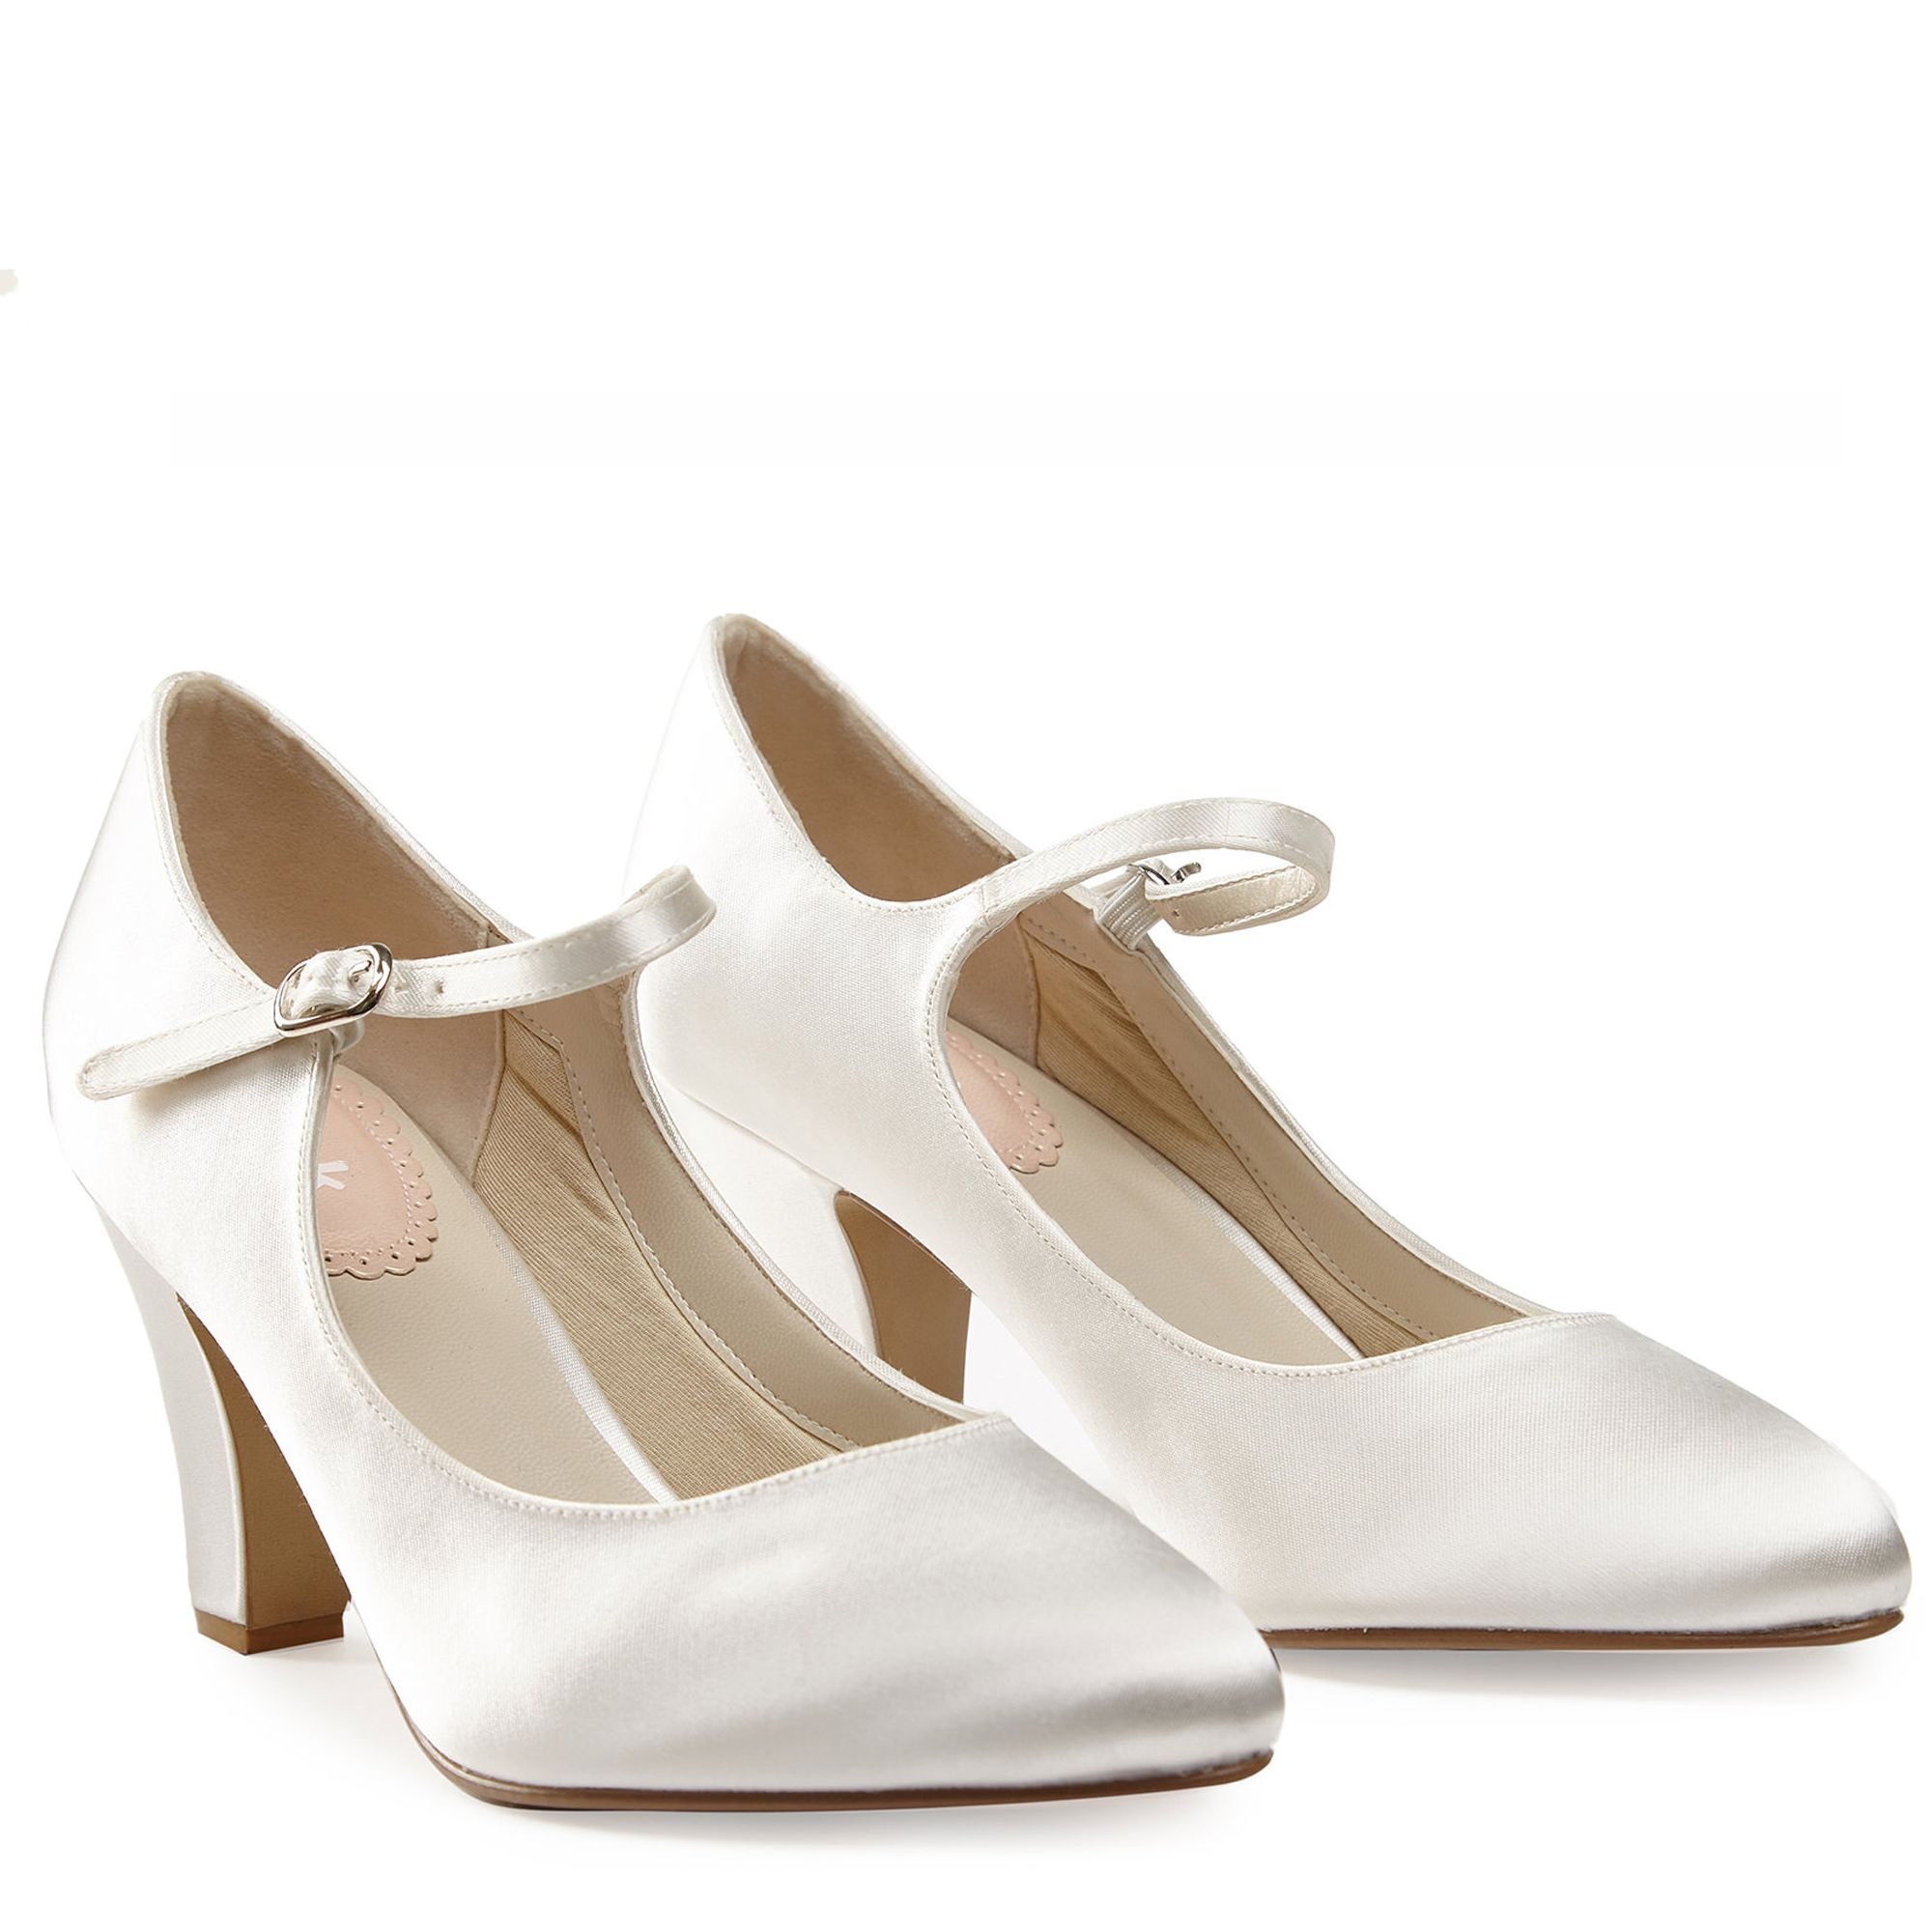 Vintage Style Shoes, Vintage Inspired Shoes Radiance Ivory - Size 42 £69.00 AT vintagedancer.com